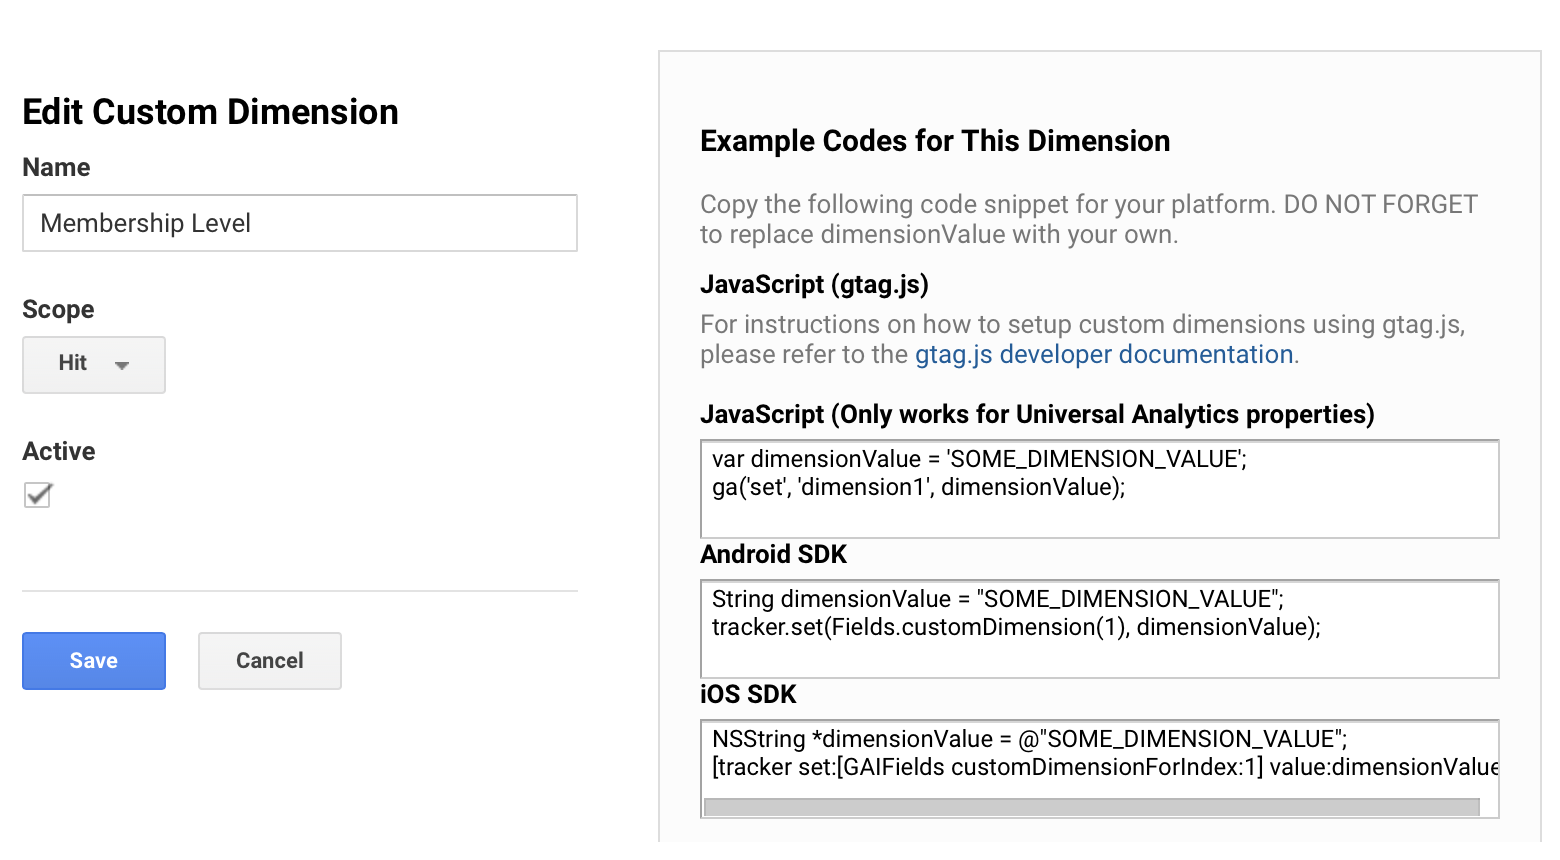 Custom Dimension for Membership Level in Google Analytics